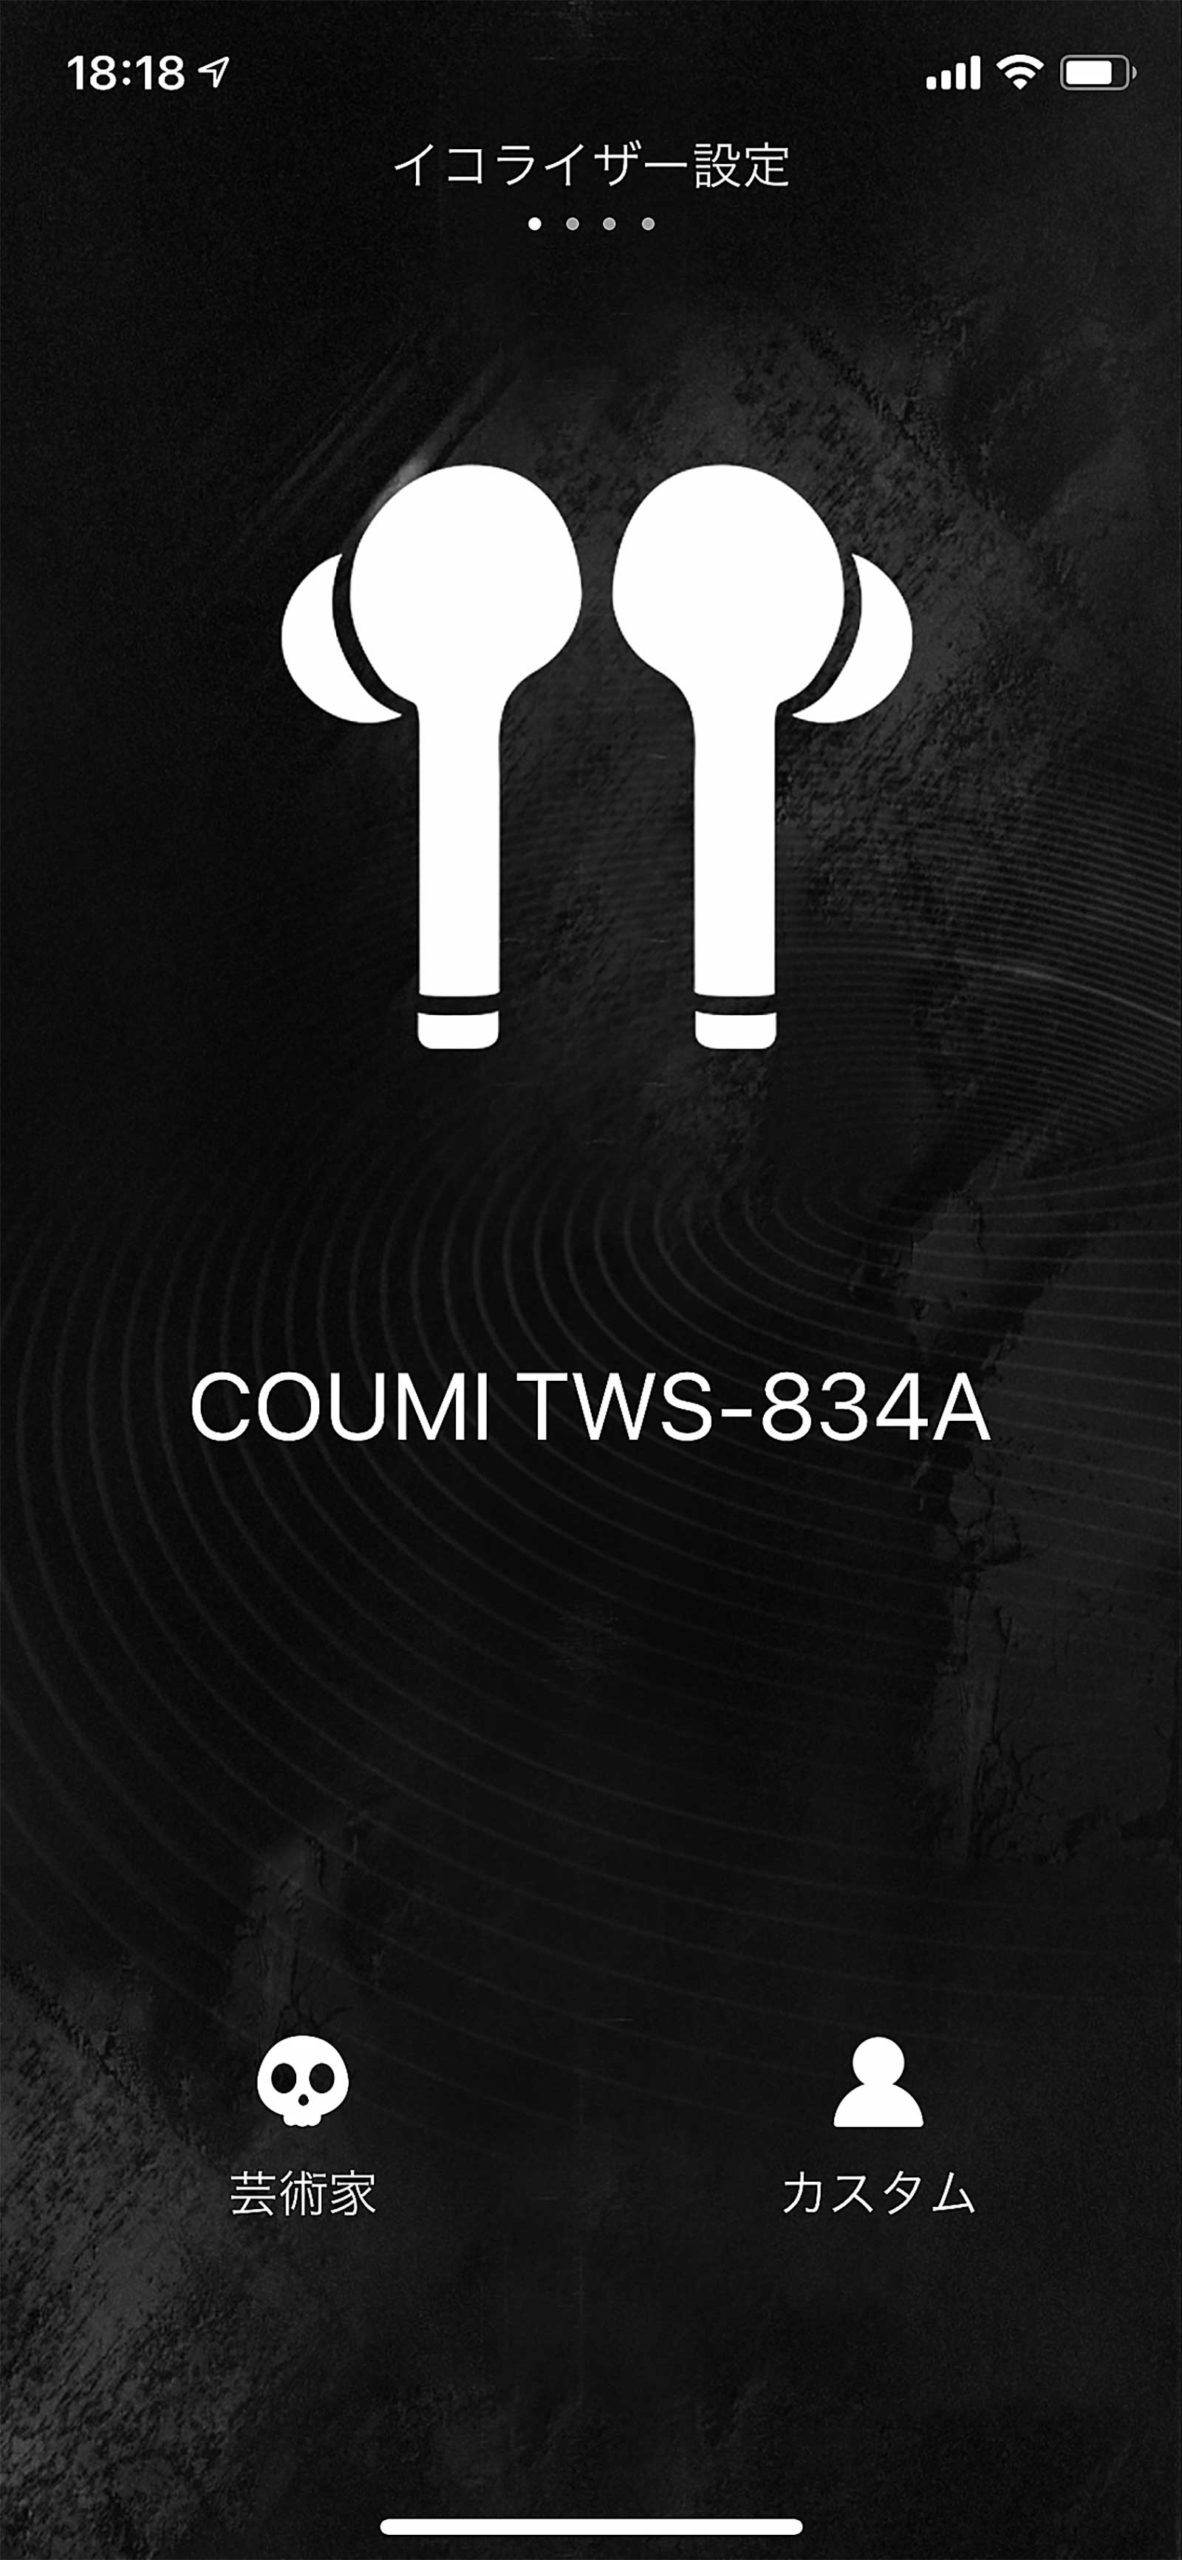 COUMI TWS-834A イコライザーアプリ